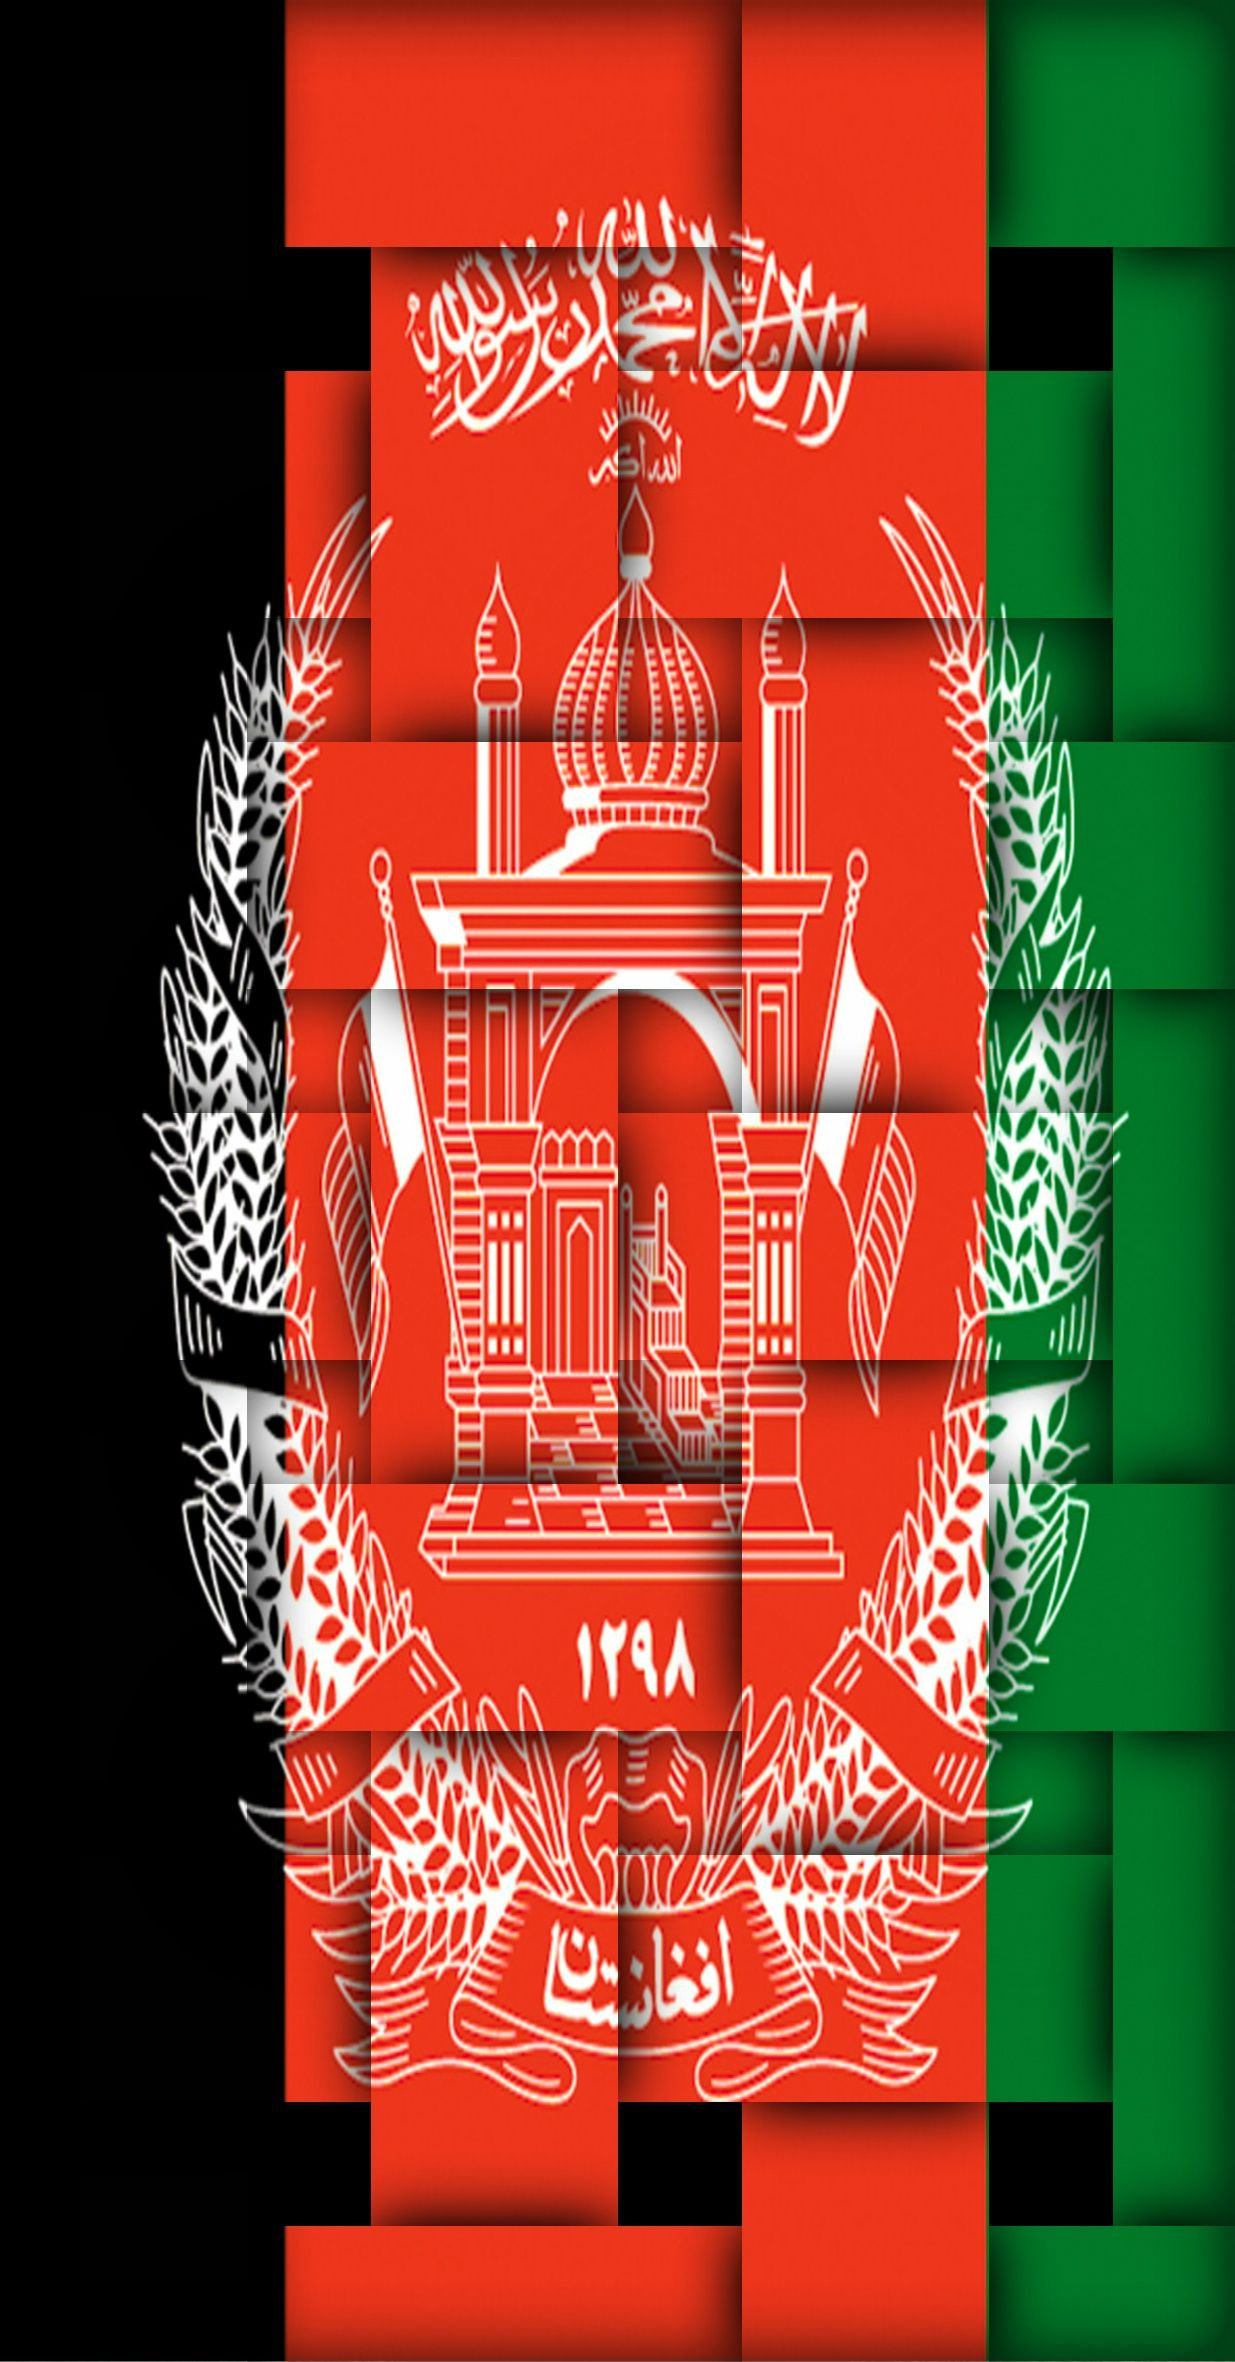 afghanistan flags artwork Wallpapers for smartphones 1235x2362